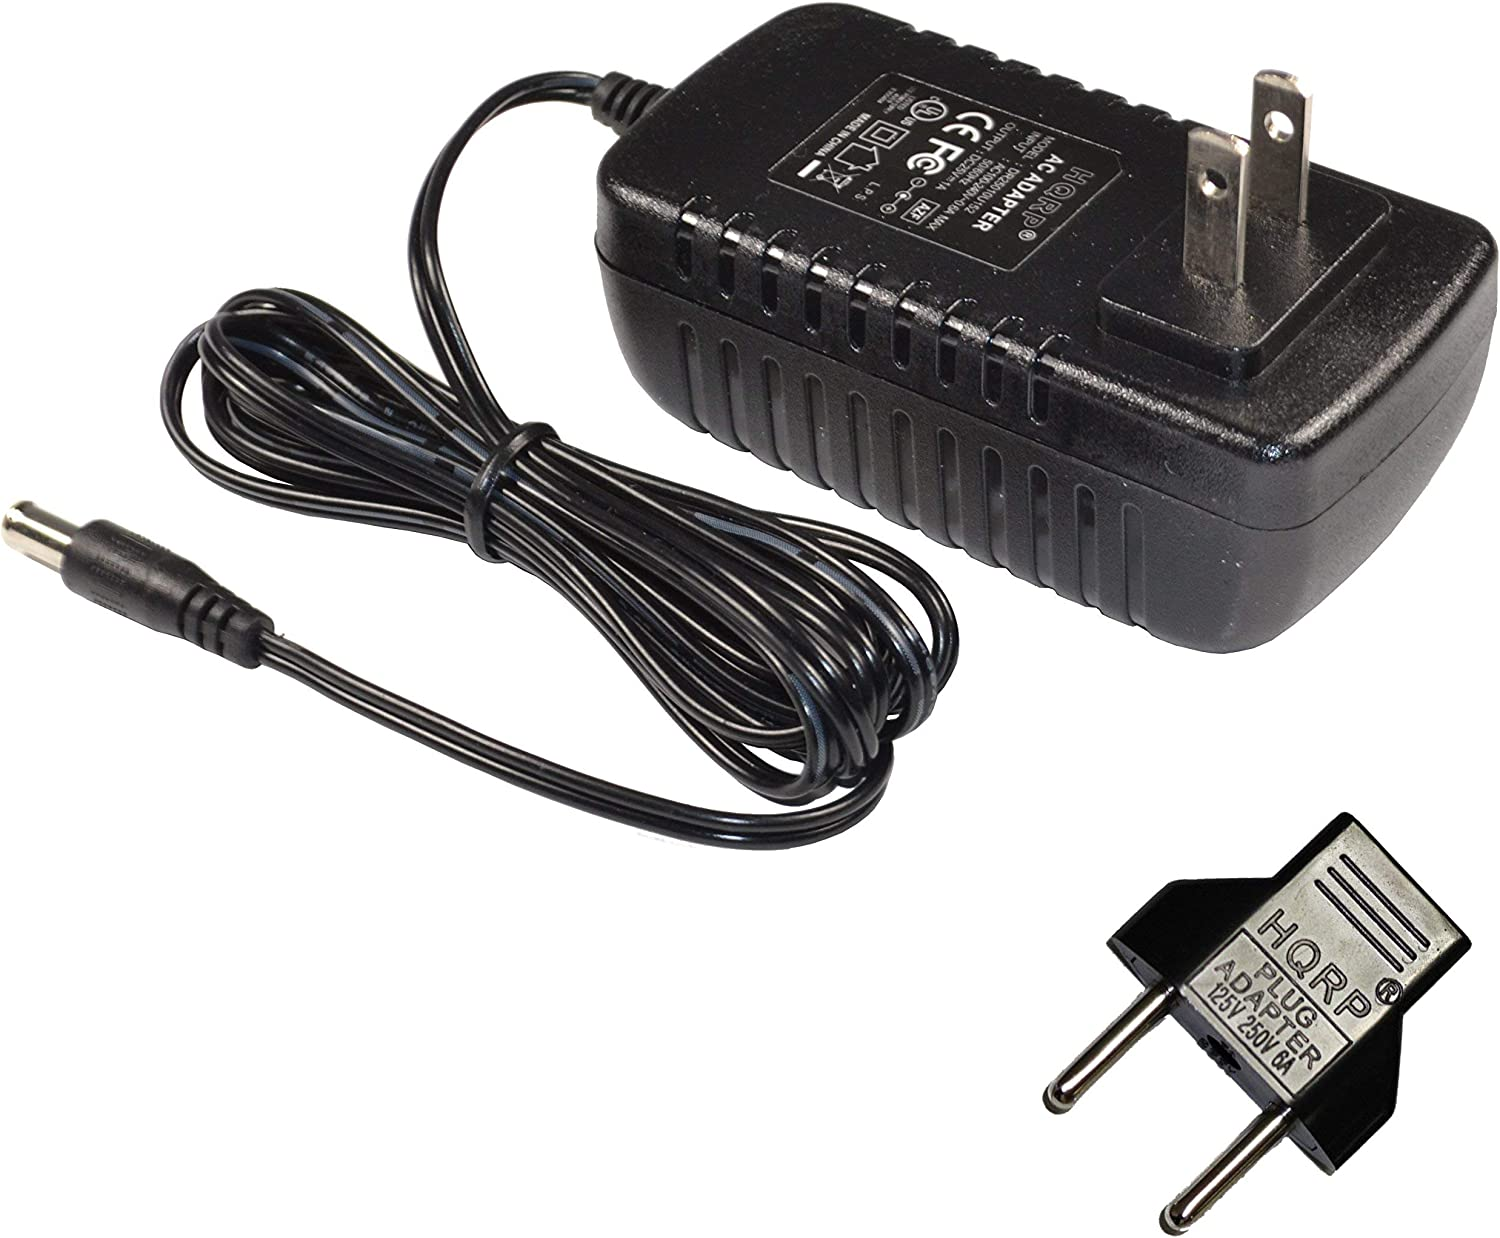 HQRP [UL Listed] 25V Battery Charger Compatible with Bissell 1604266, 1312 Series, 13122, 13129, 1312R, 13121, 13128 18V ION Cordless Vac Vacuum AC Adapter Power Supply SSA-250100US